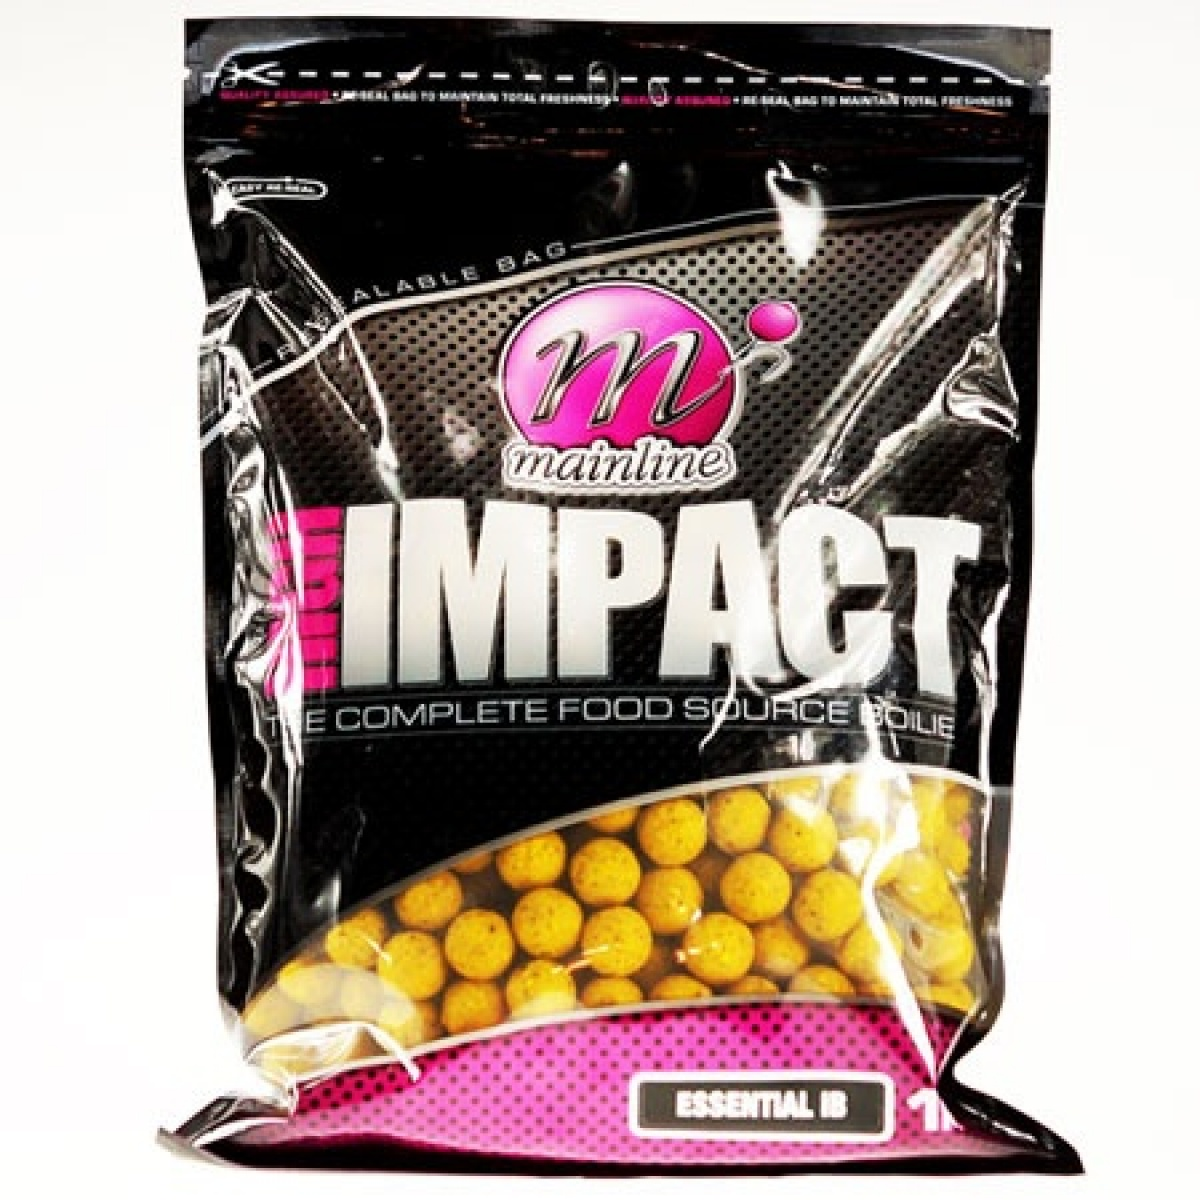 MAINLINE High Impact Essential IB Boilies rozmiar 20 mm - 1 kg